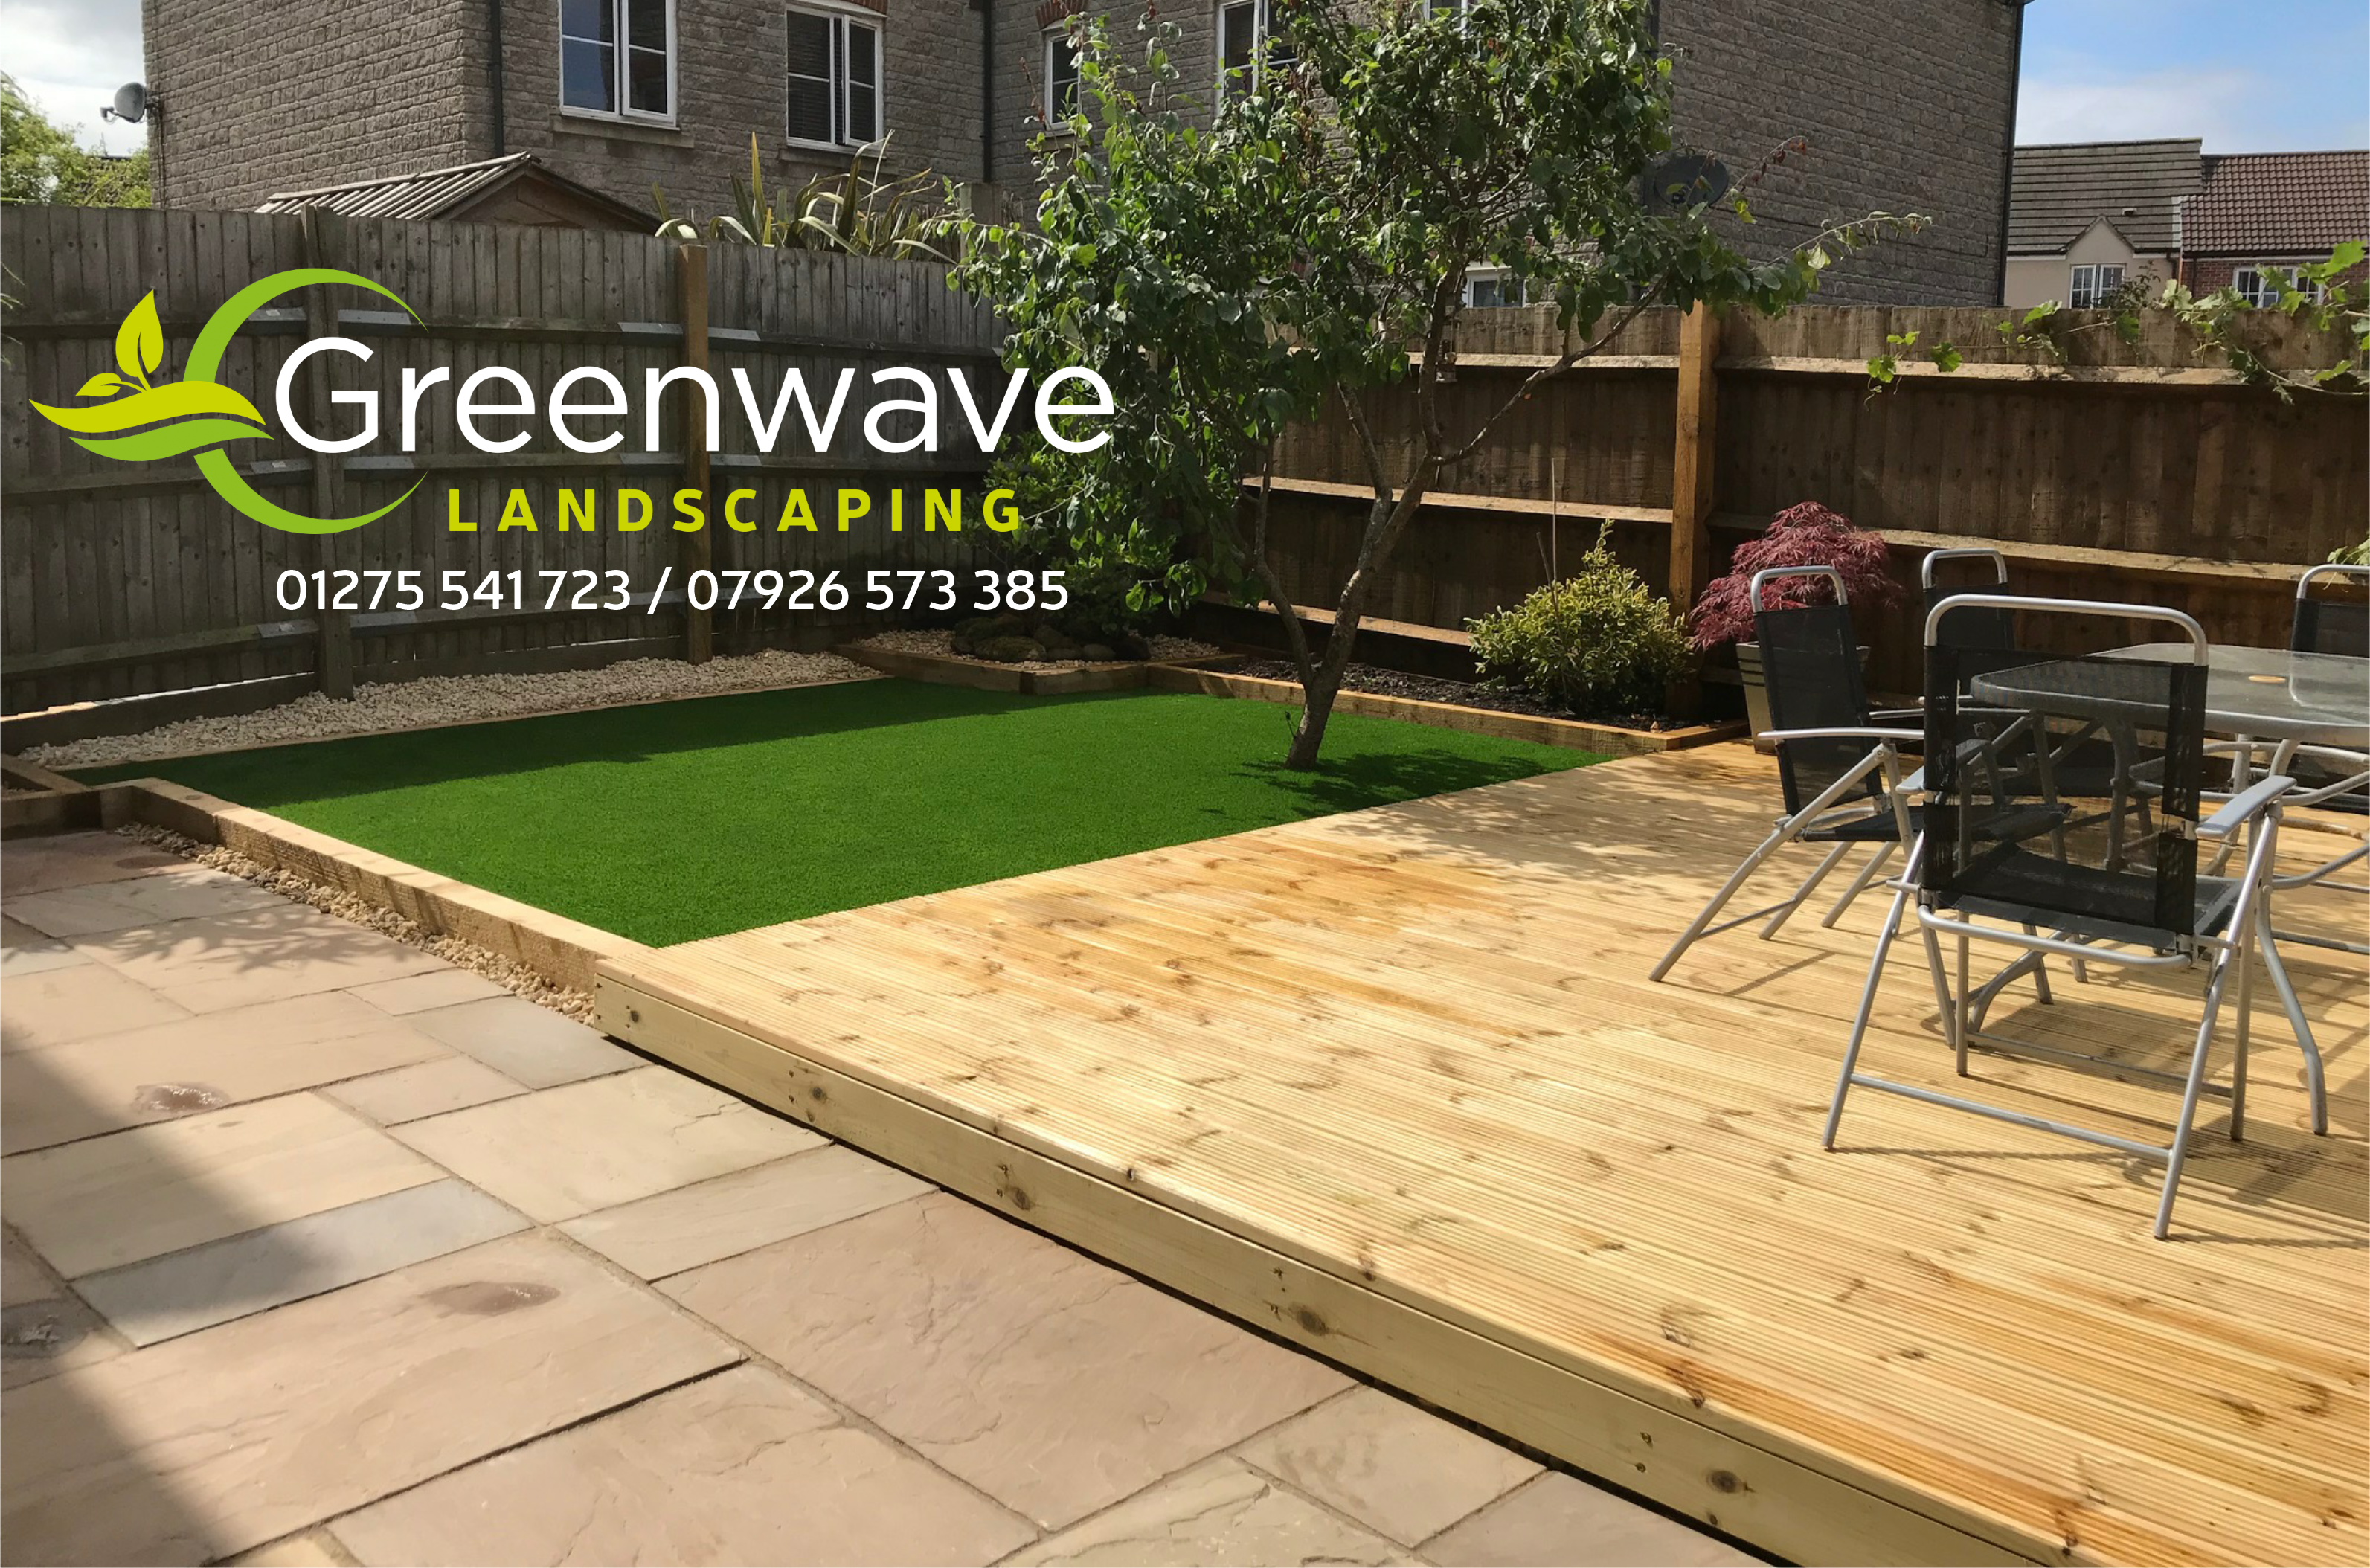 greenwave landscaping bristol decking patio lawns turf artificial grass